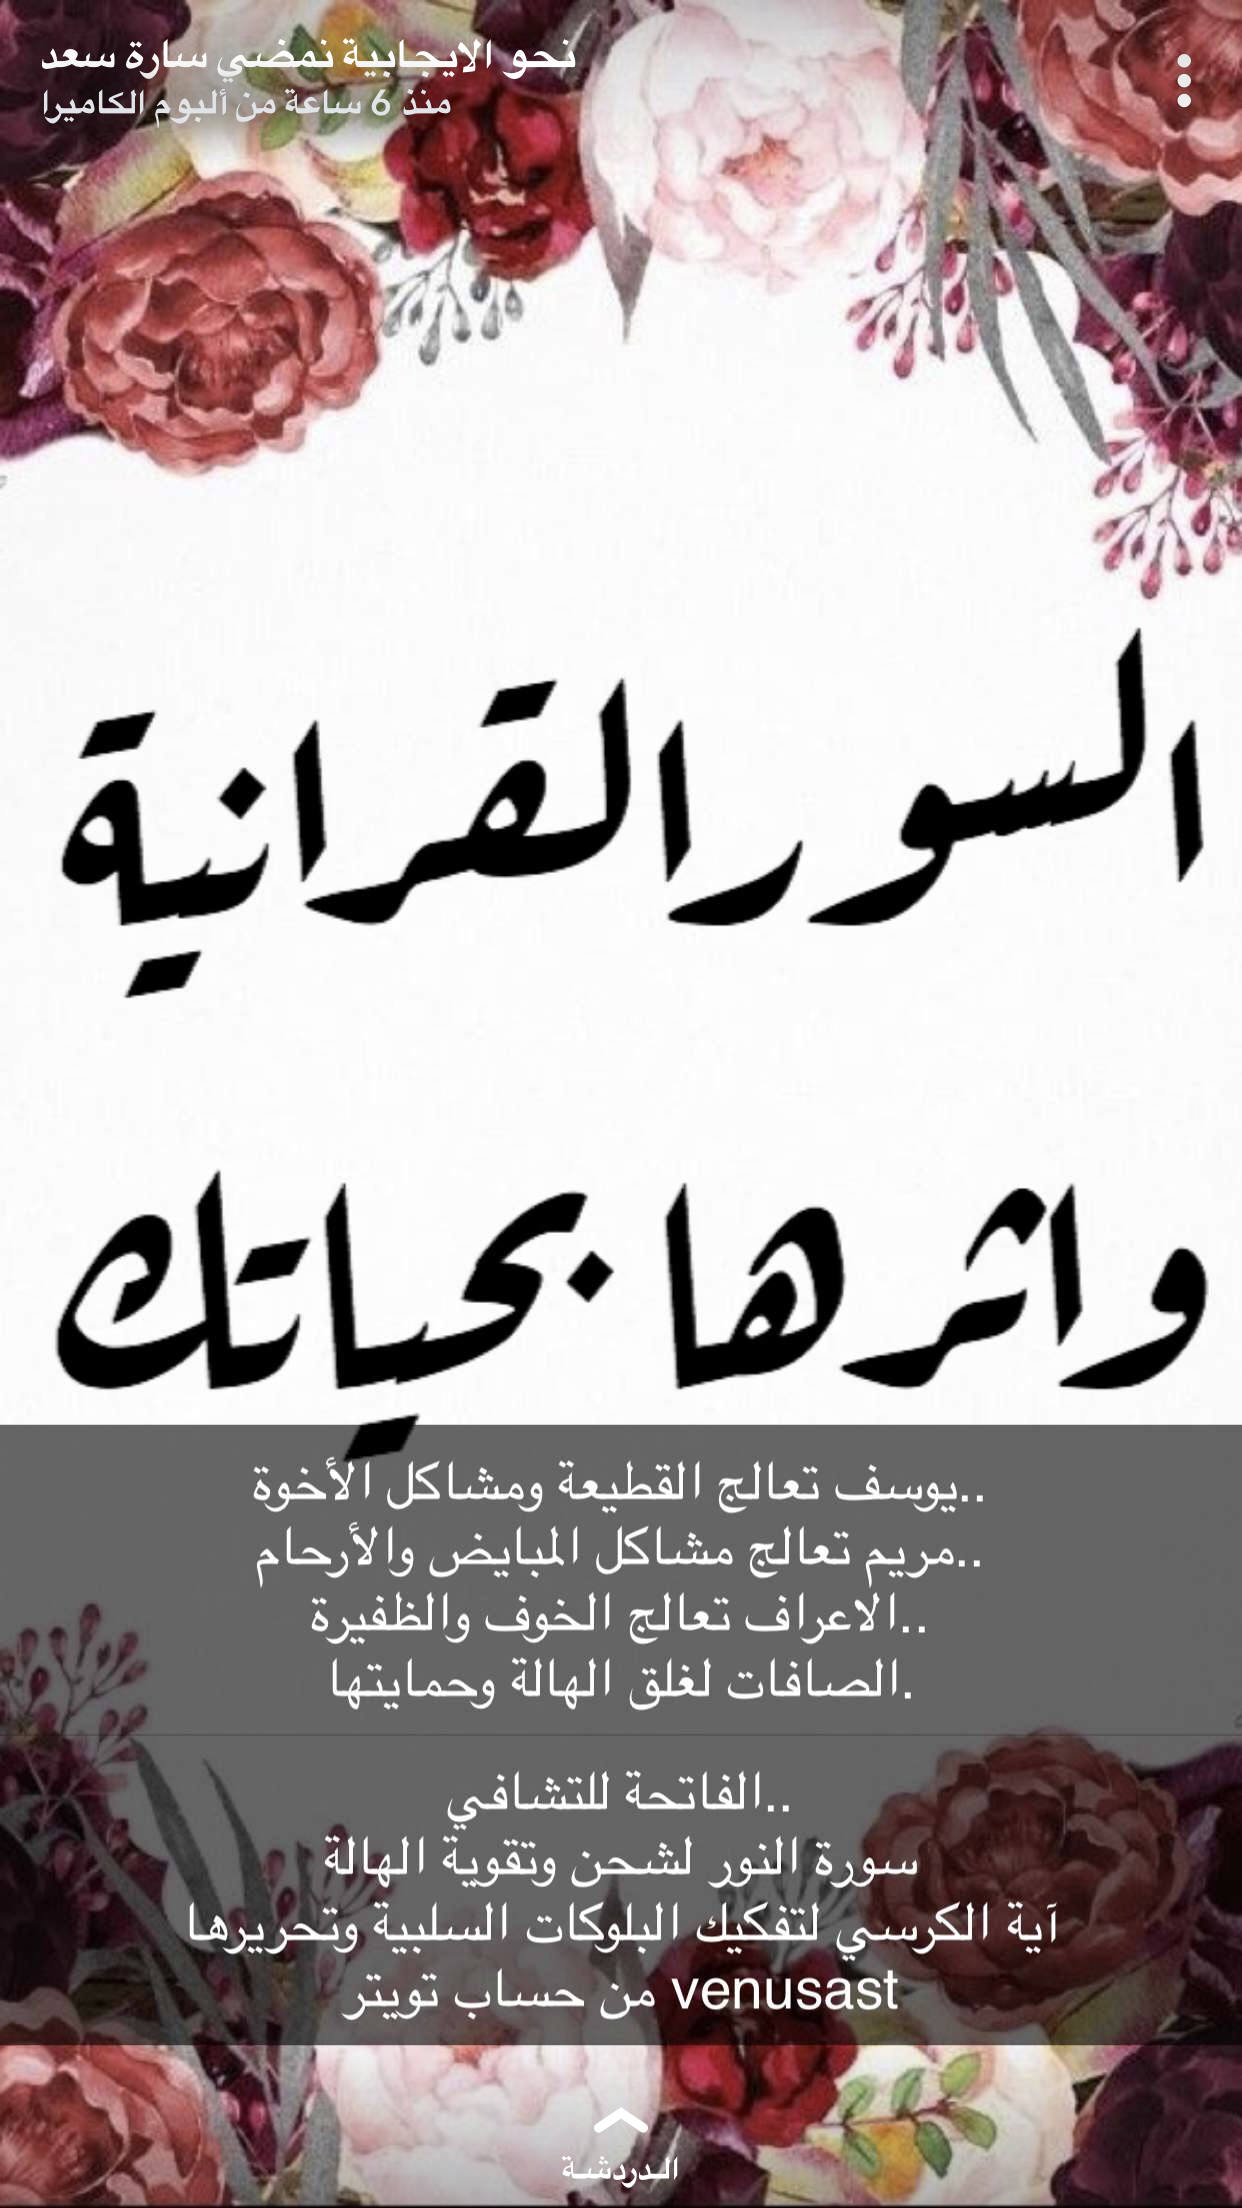 Pin By جوانا جوانا On نصائح عامة Islamic Quotes Quran Islam Facts Muslim Quotes